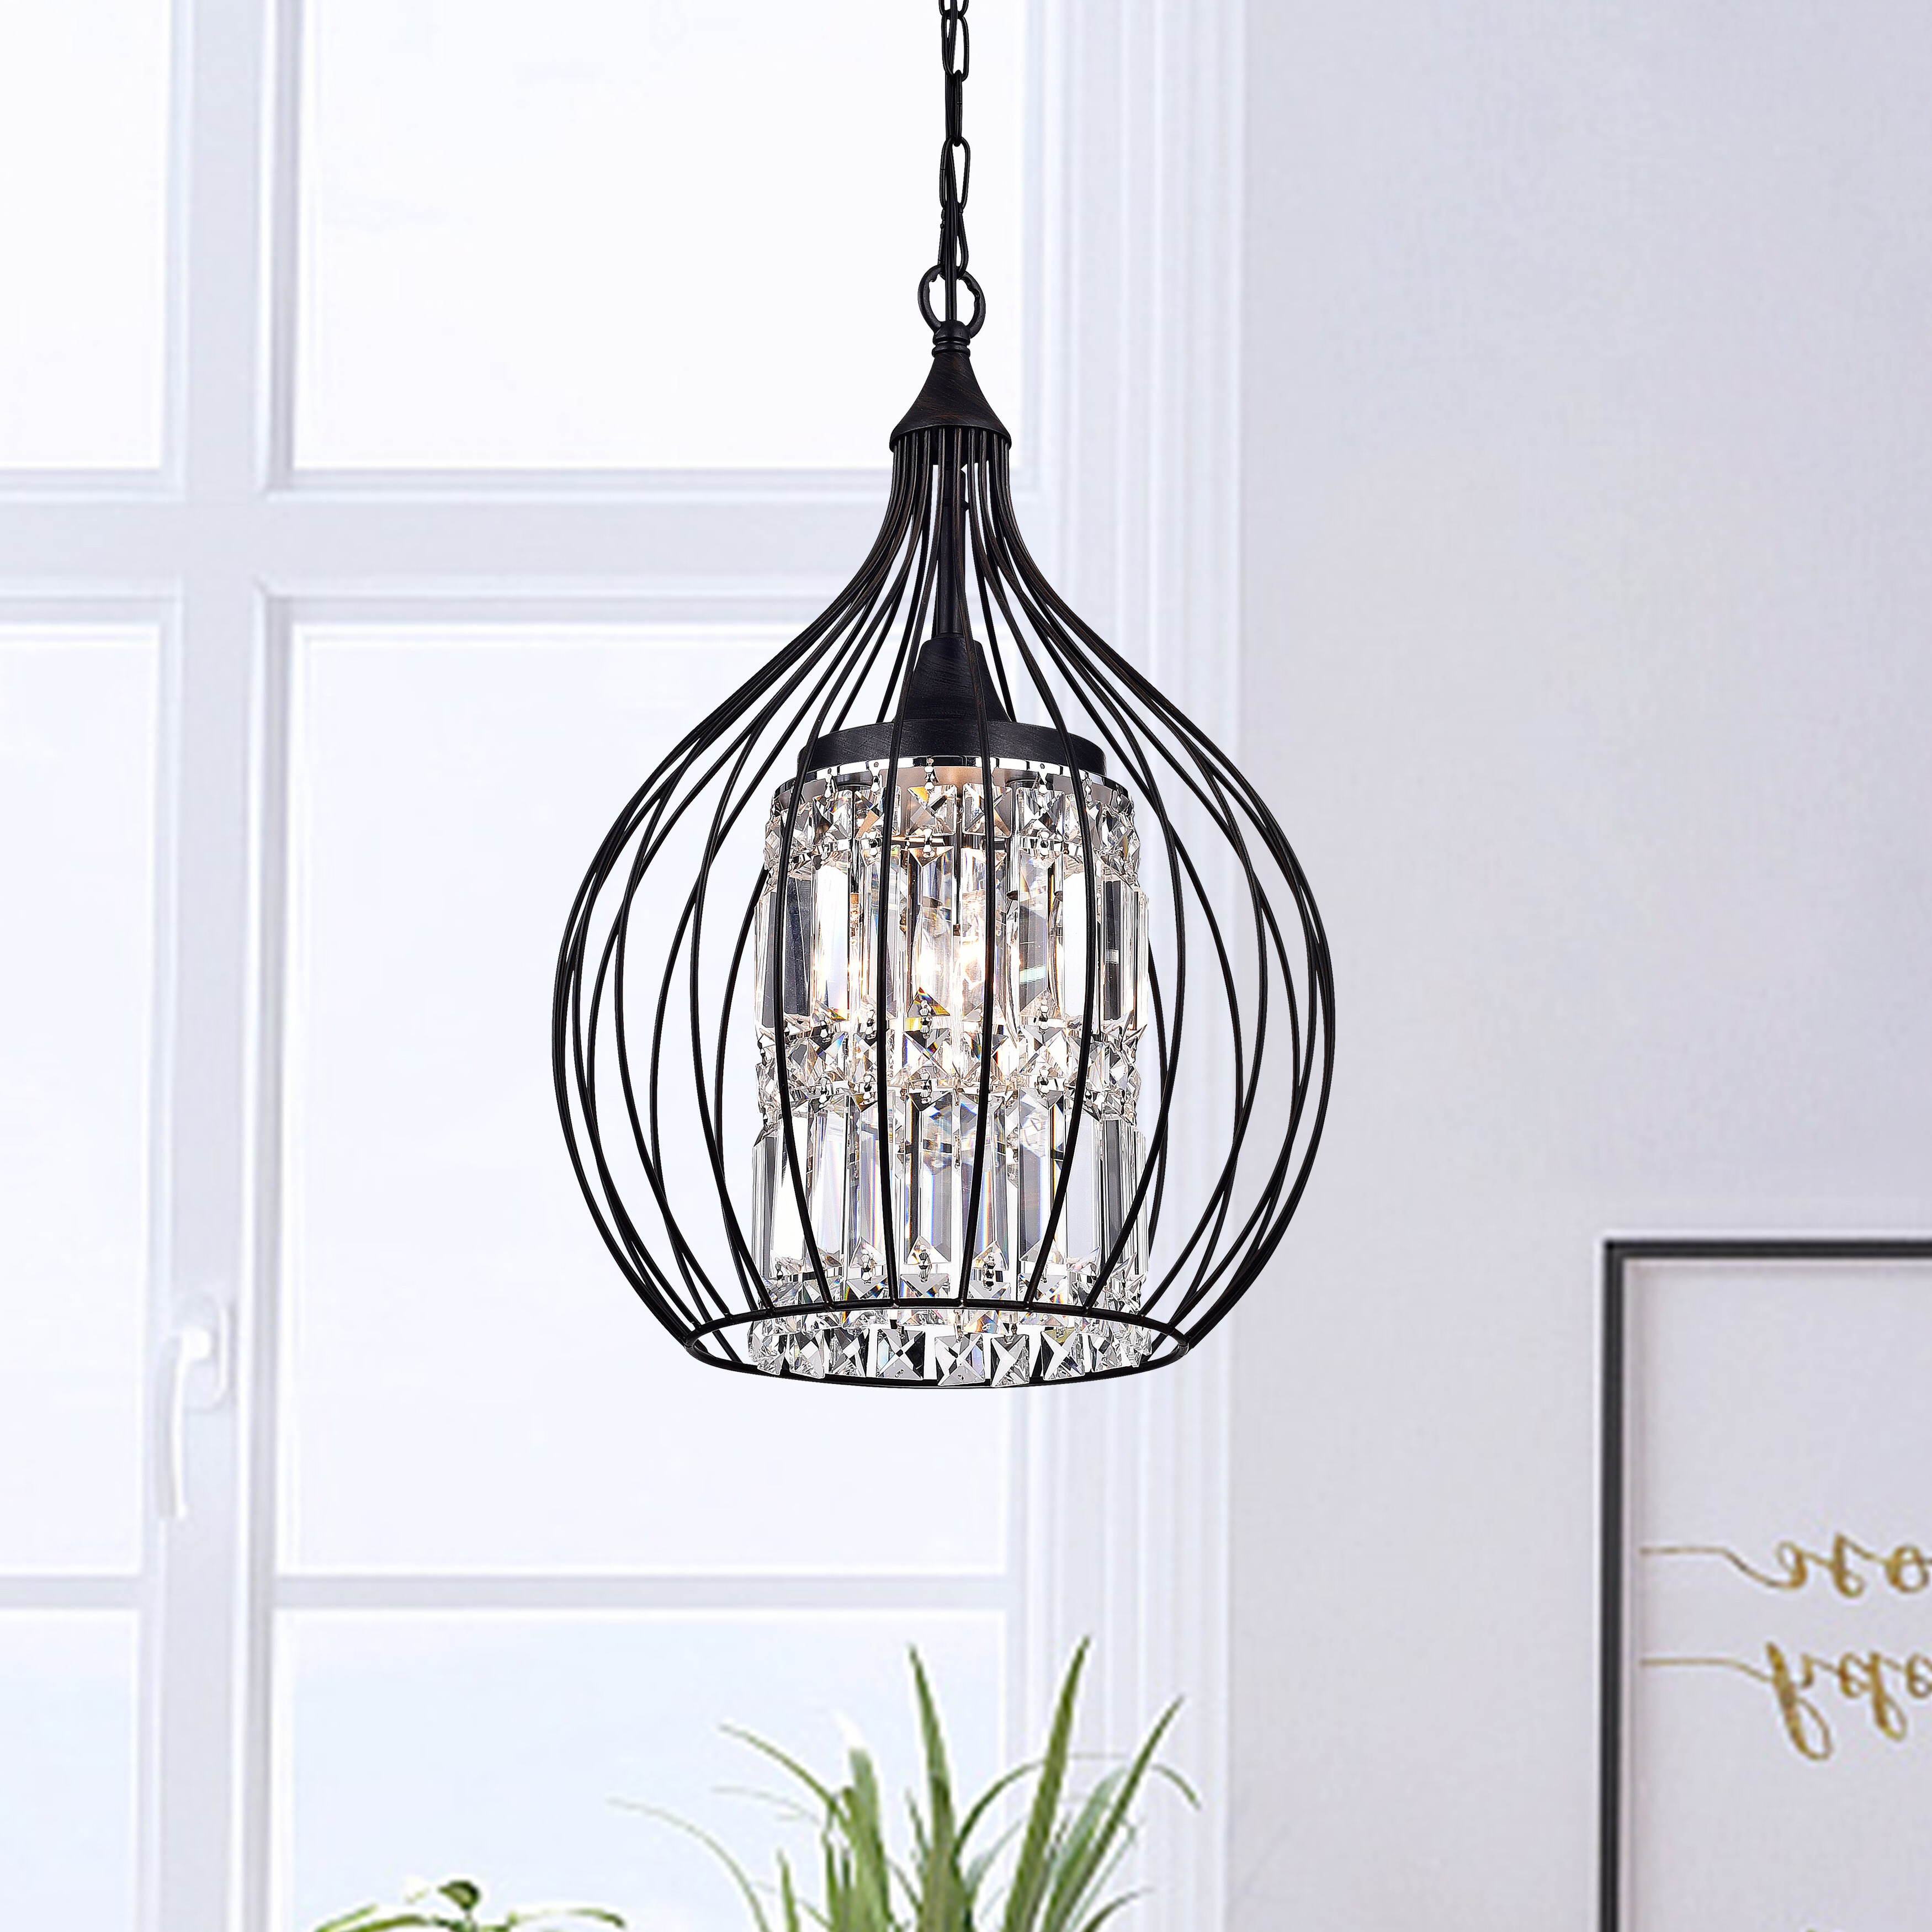 Widely Used Dirksen 3 Light Single Cylinder Chandeliers Intended For Richwood 3 Light Globe Chandelier (View 18 of 20)